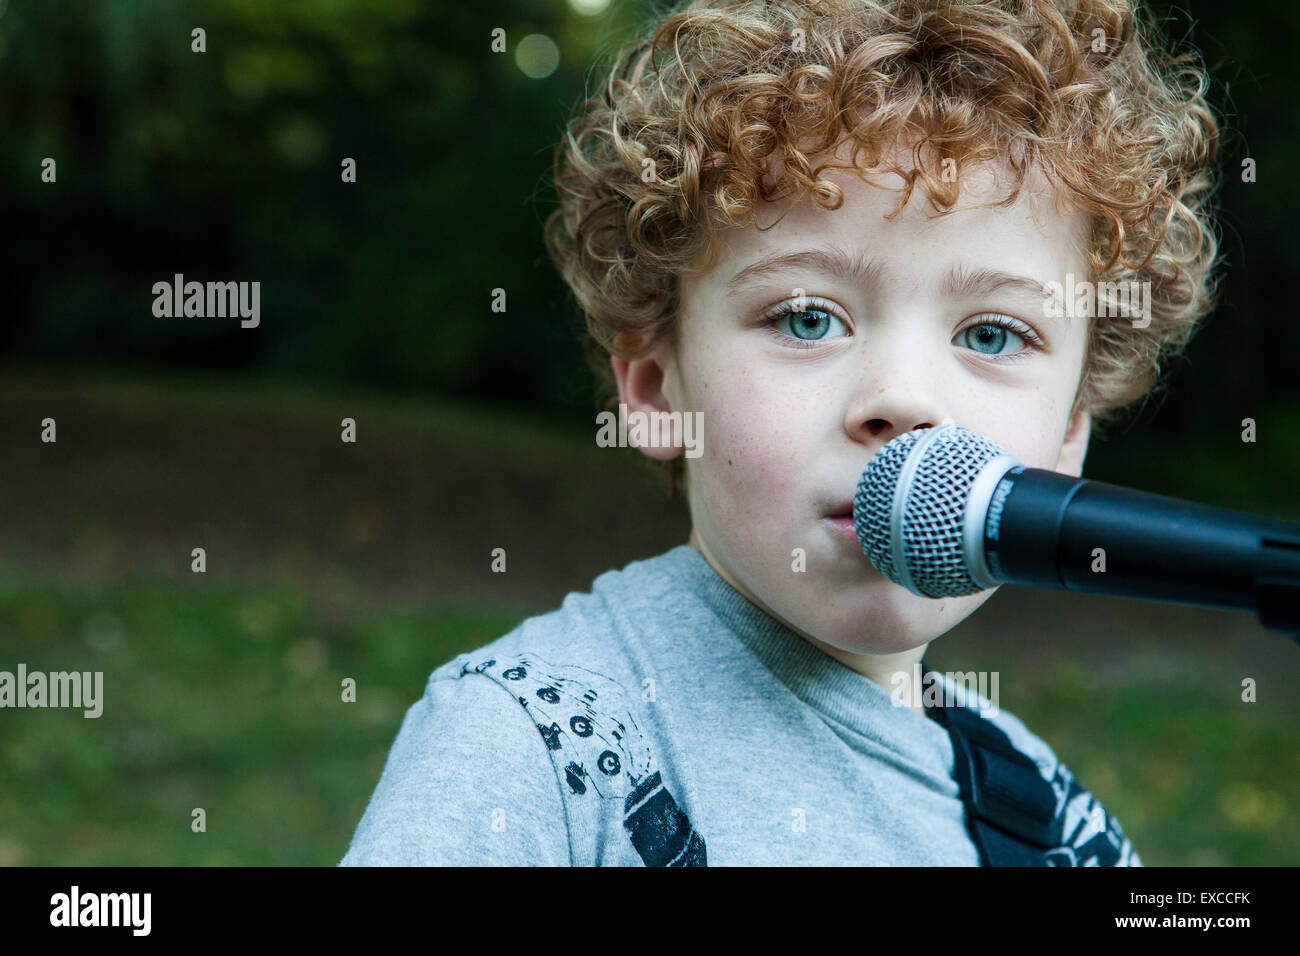 A young boy with curly red hair sings into a microphone. - Stock Image